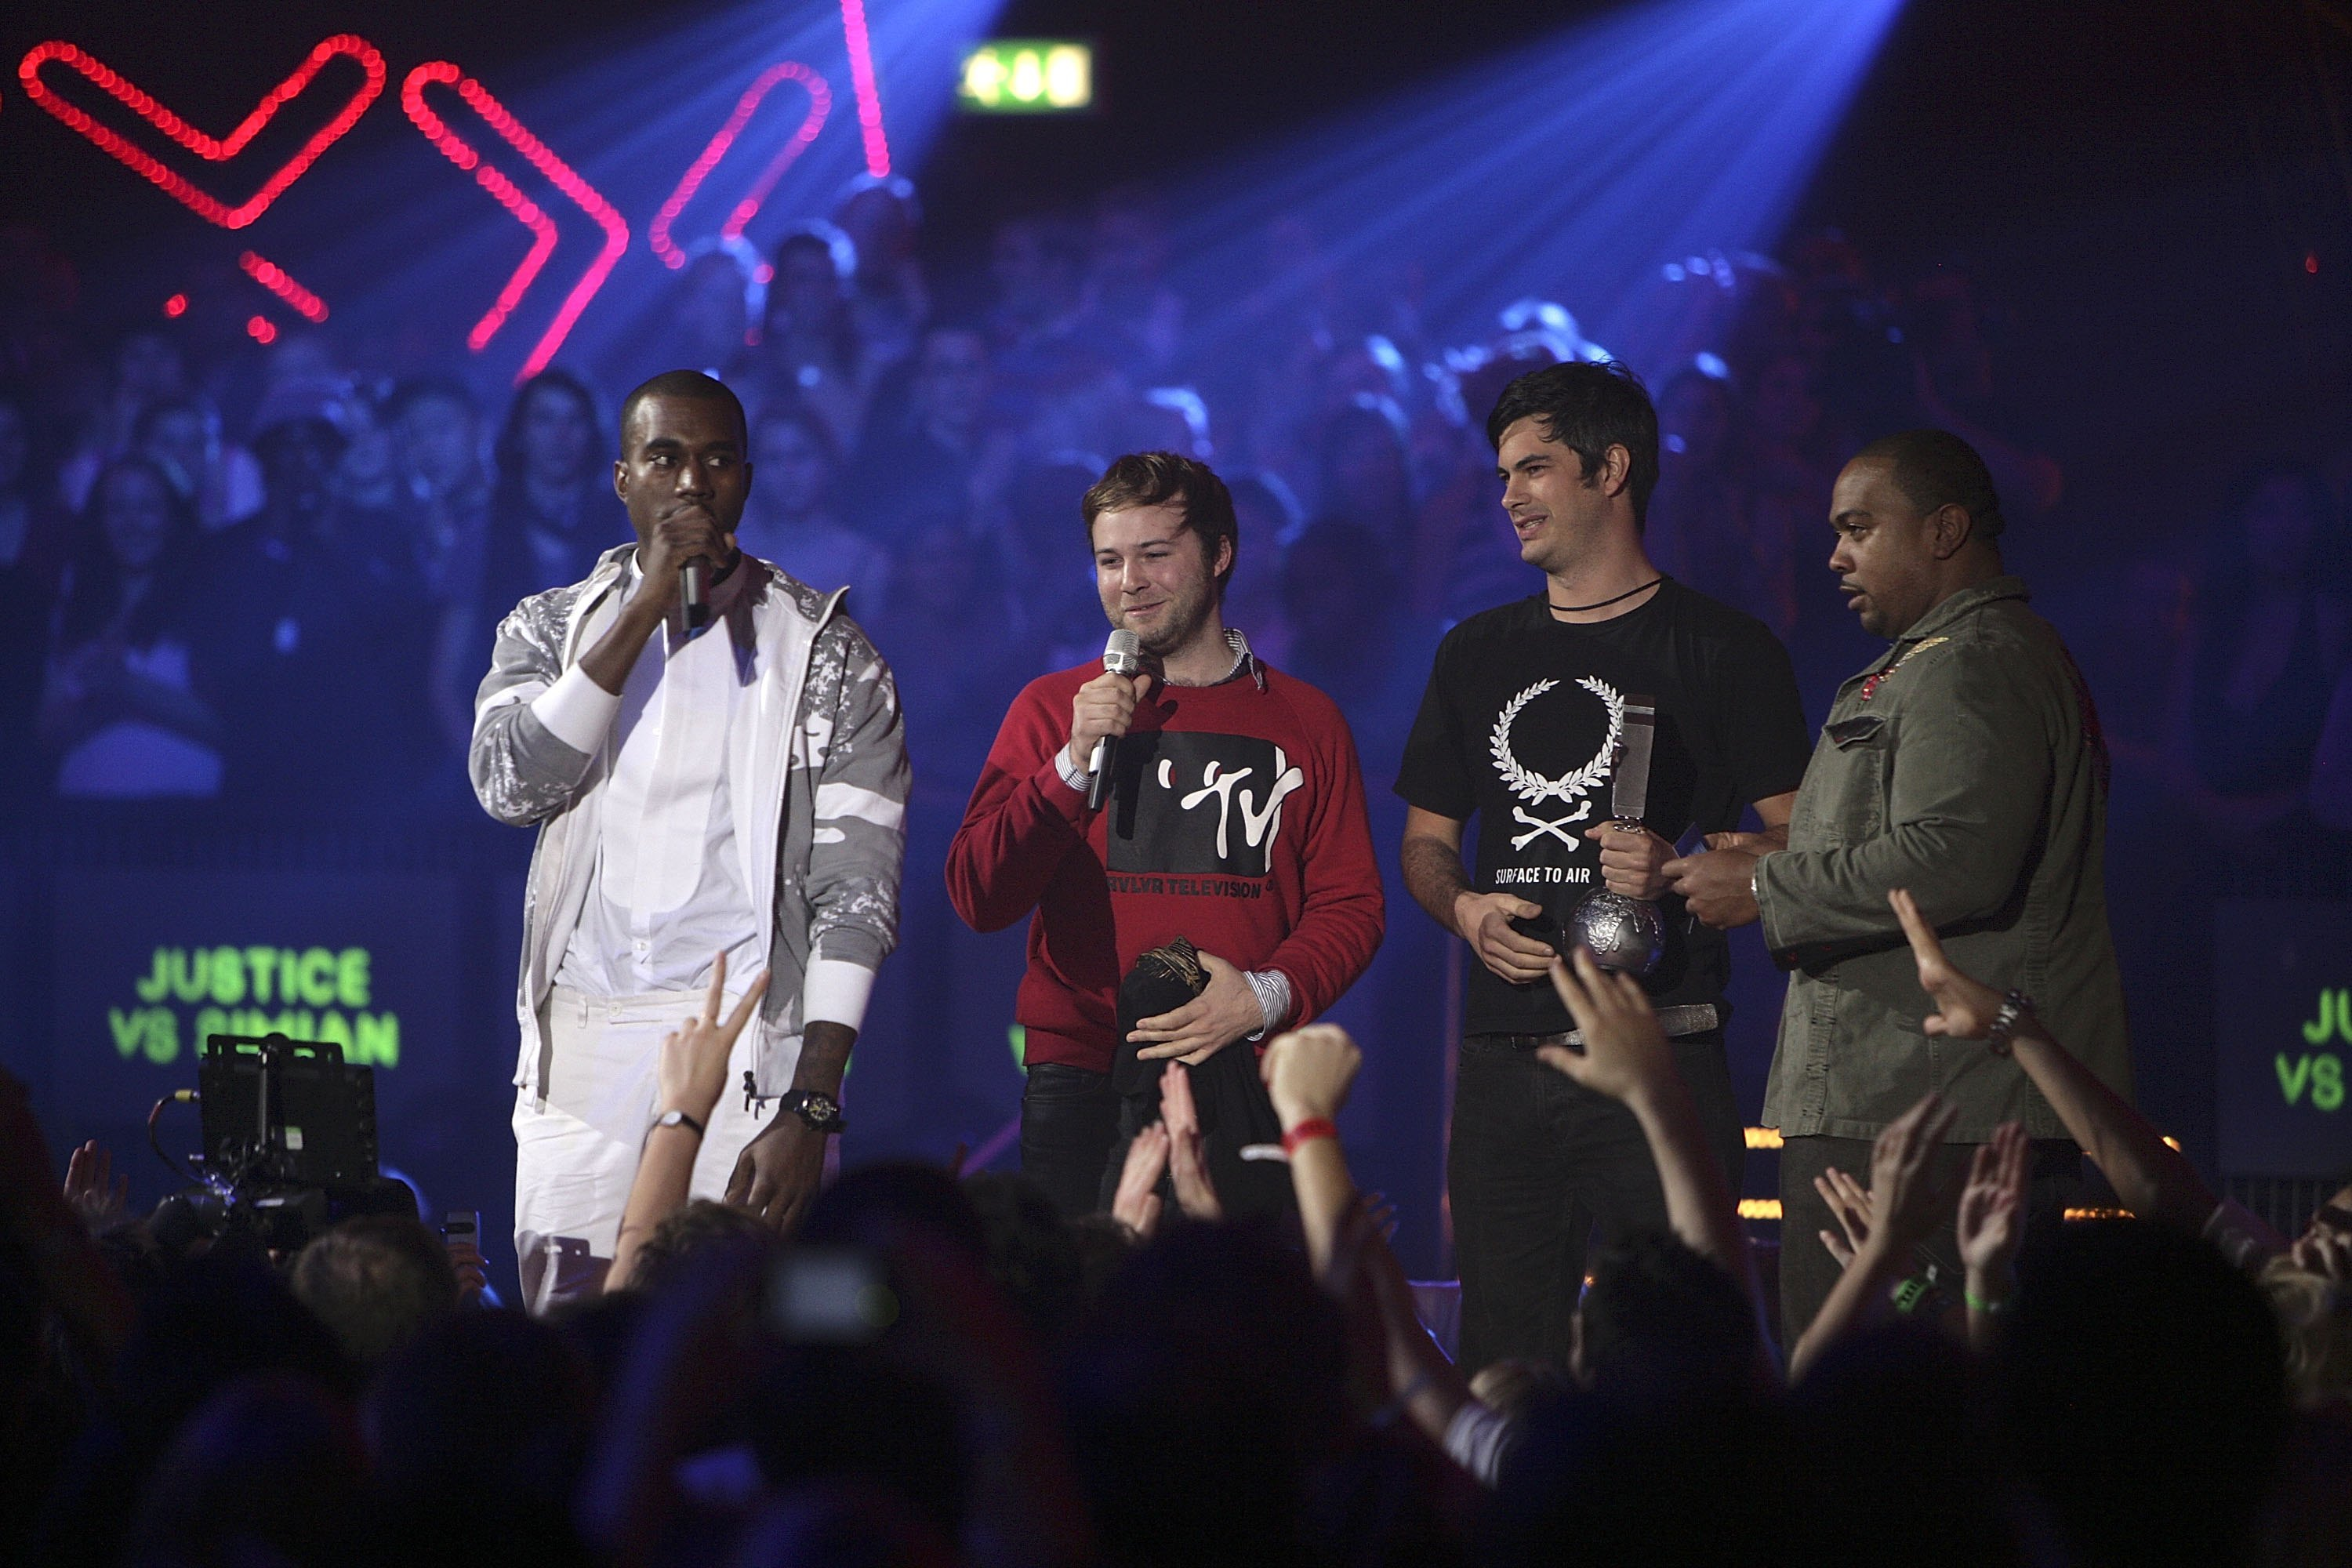 """Kanye West (L) and Timbaland present the Best Video Award to Jeremie Rozan and Martial Schmeltz, directors of """"We Are Your Friends"""" by Justice Vs Simian on stage at the 13th annual MTV Europe Music Awards at the Bella Center in Copenhagen, Denmark on November 2, 2006."""